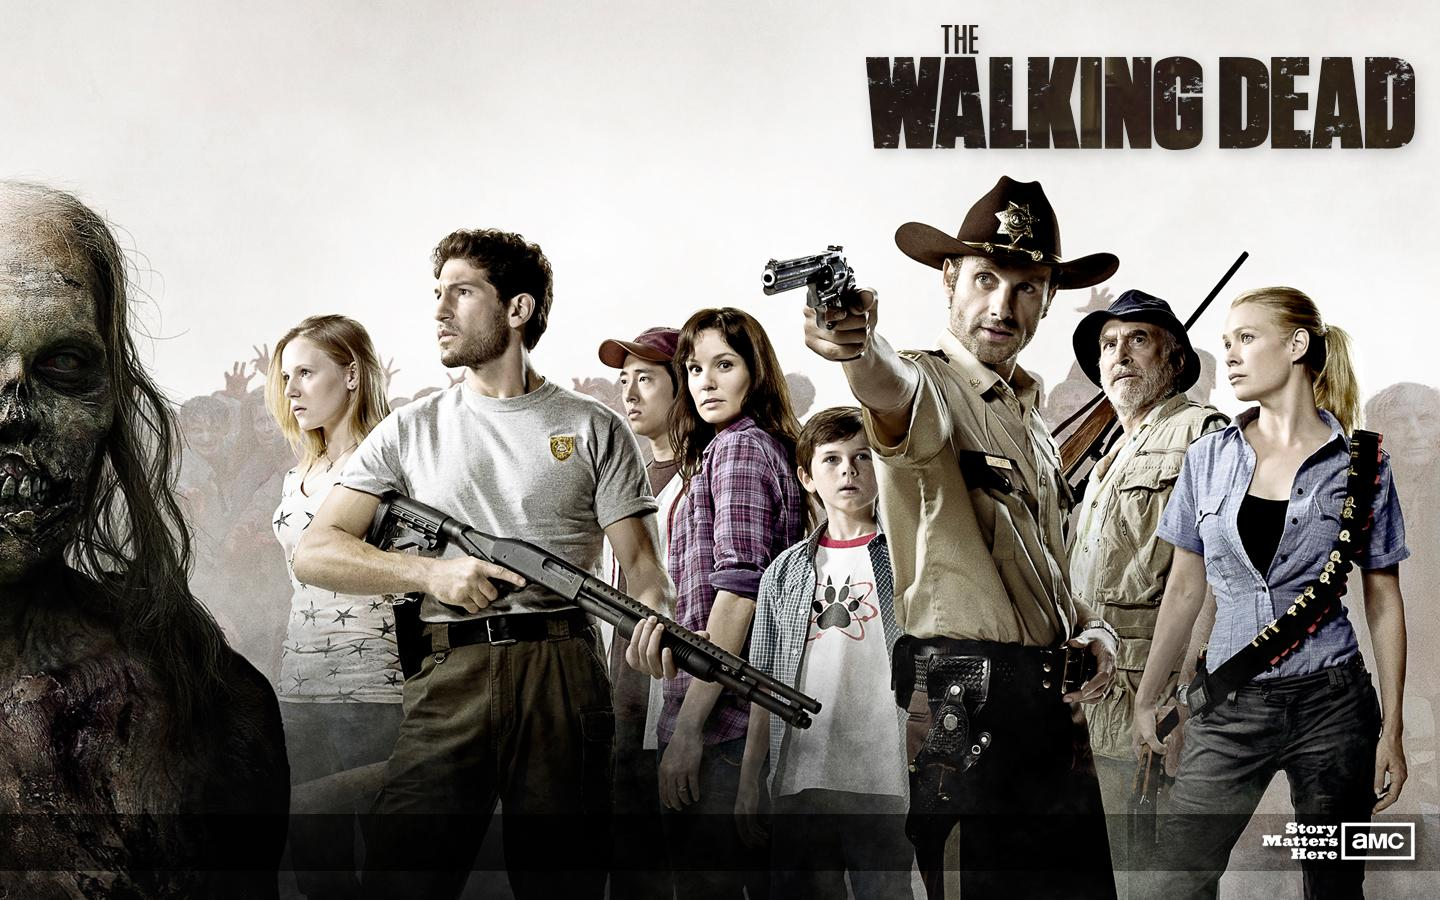 The Walking Dead is a television drama series developed by Frank ...